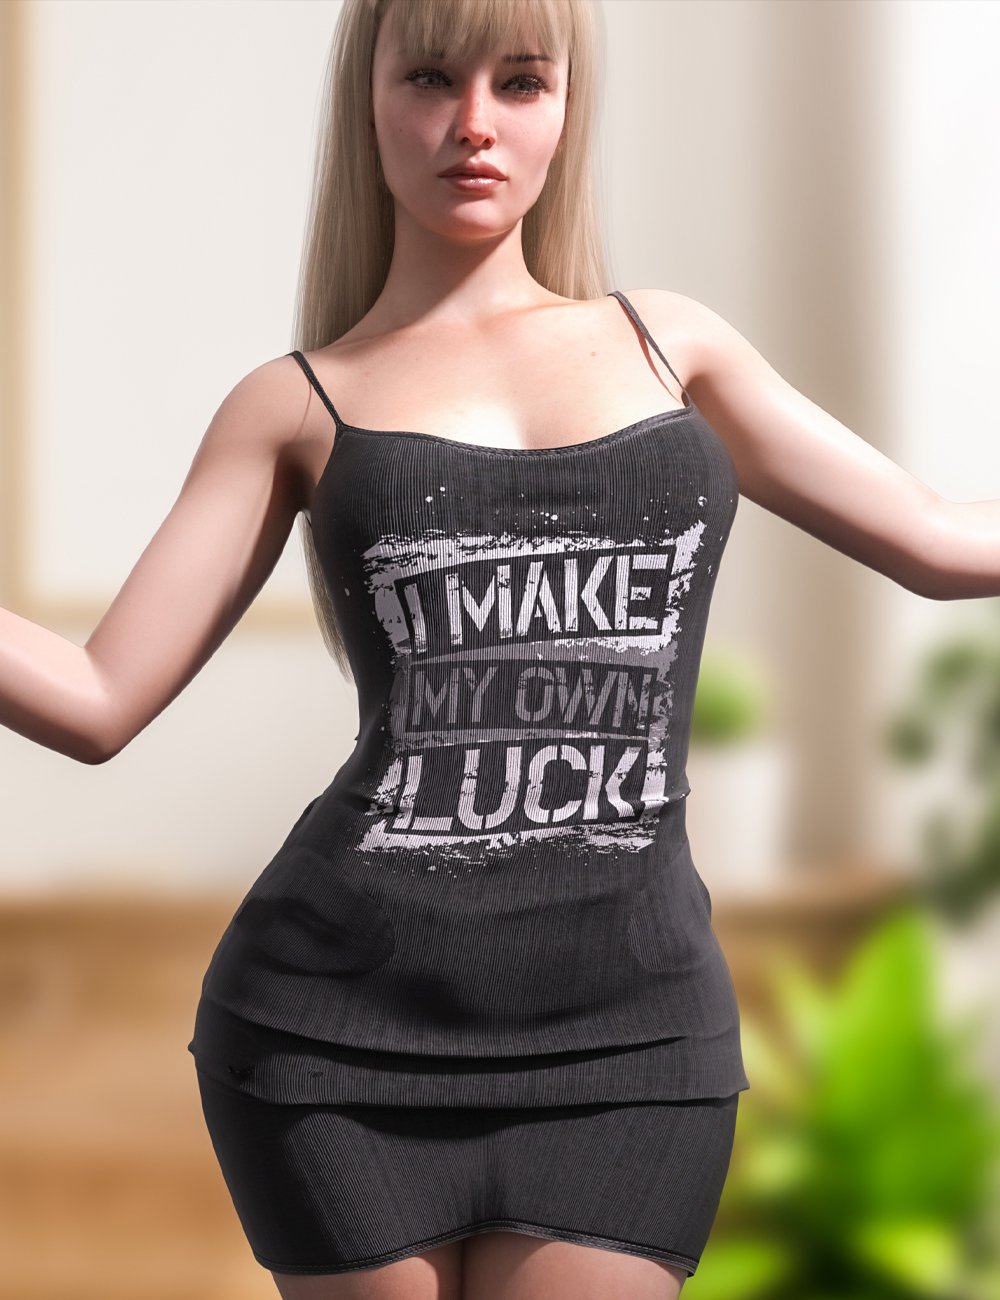 dForce Summer Sleeveless Dress for Genesis 8 and 8.1 Females by: fefecoolyellow, 3D Models by Daz 3D